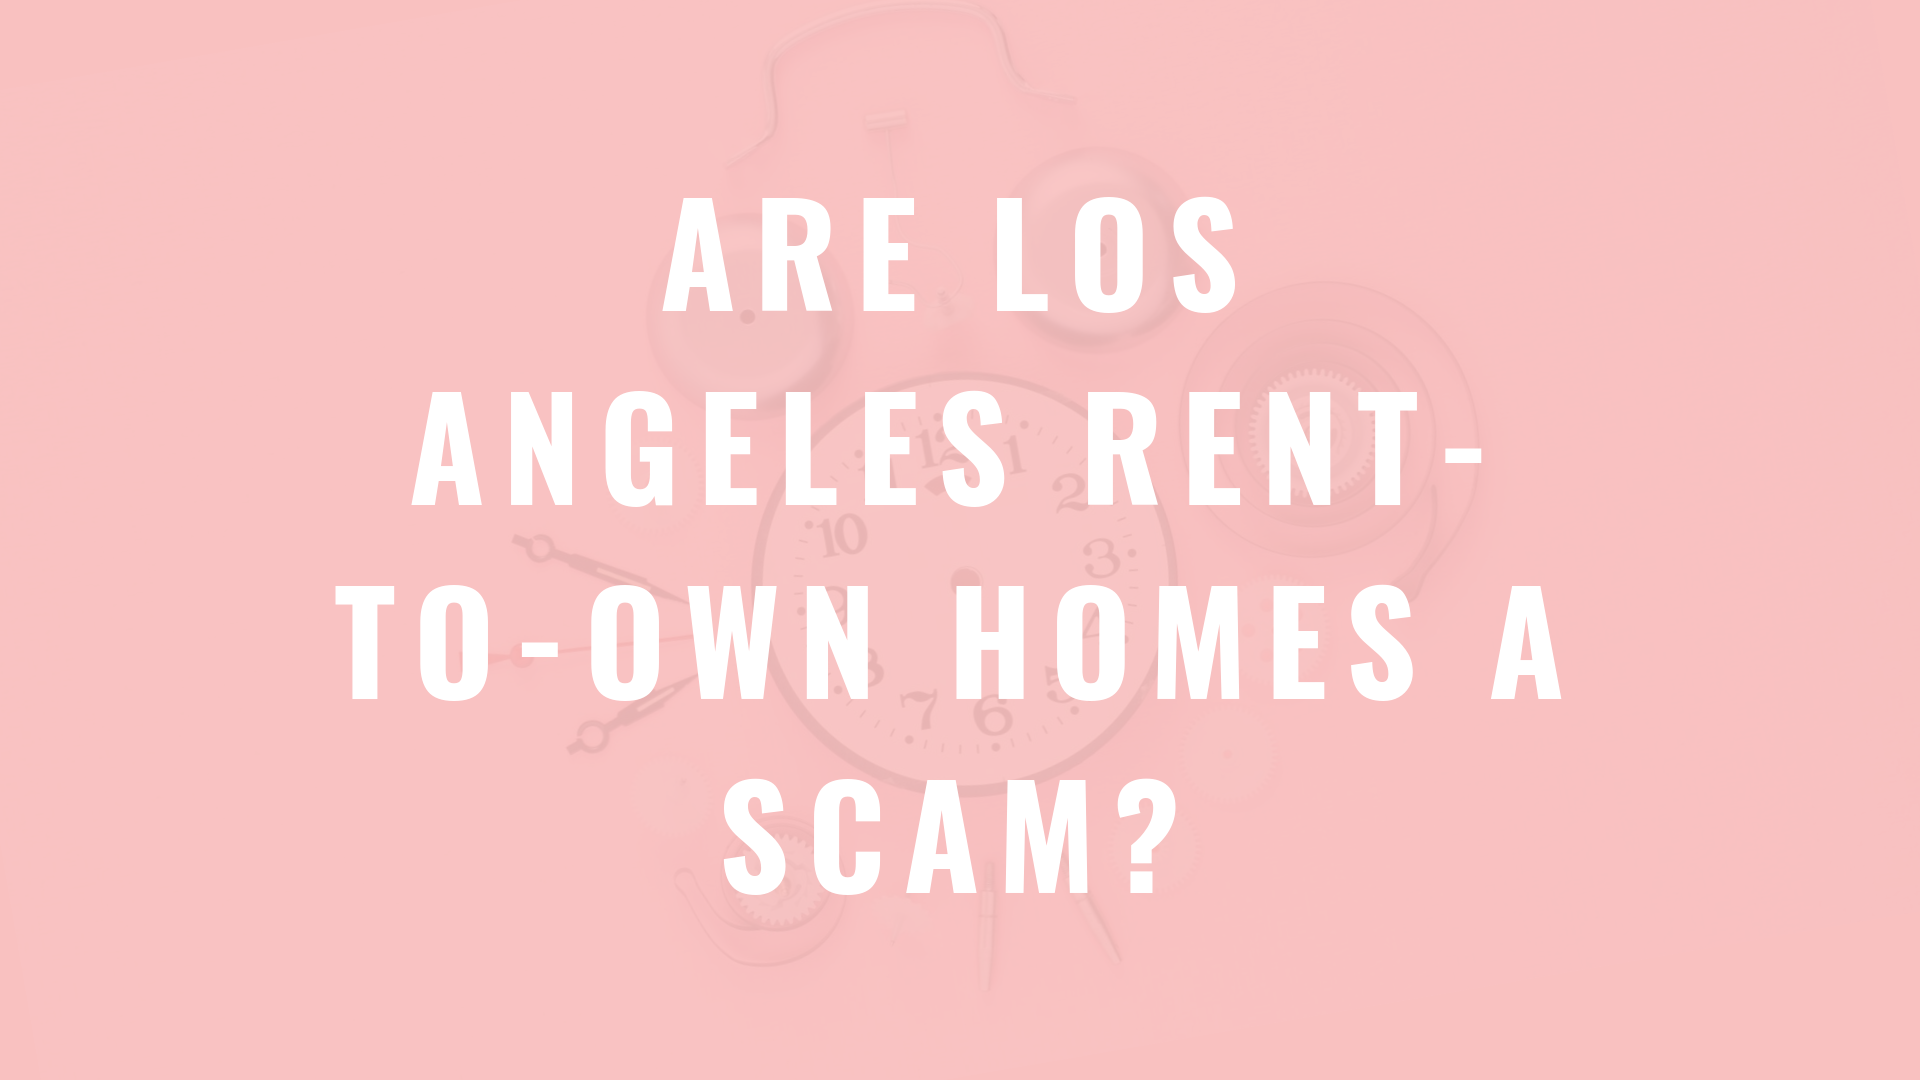 rent-to-own homes a scam